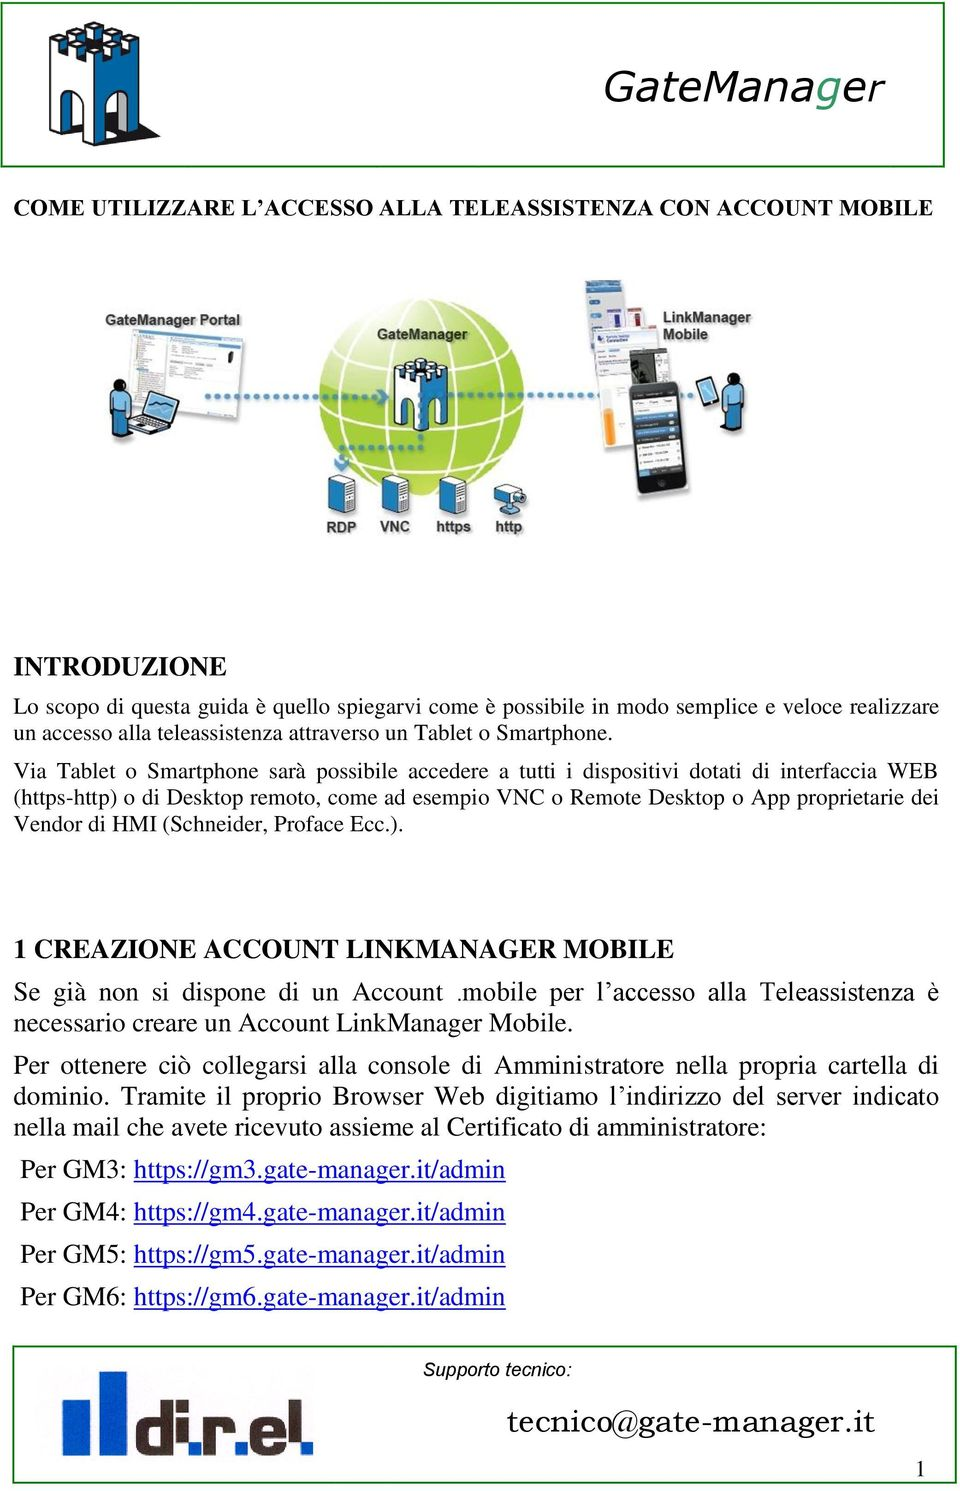 Via Tablet o Smartphone sarà possibile accedere a tutti i dispositivi dotati di interfaccia WEB (https-http) o di Desktop remoto, come ad esempio VNC o Remote Desktop o App proprietarie dei Vendor di